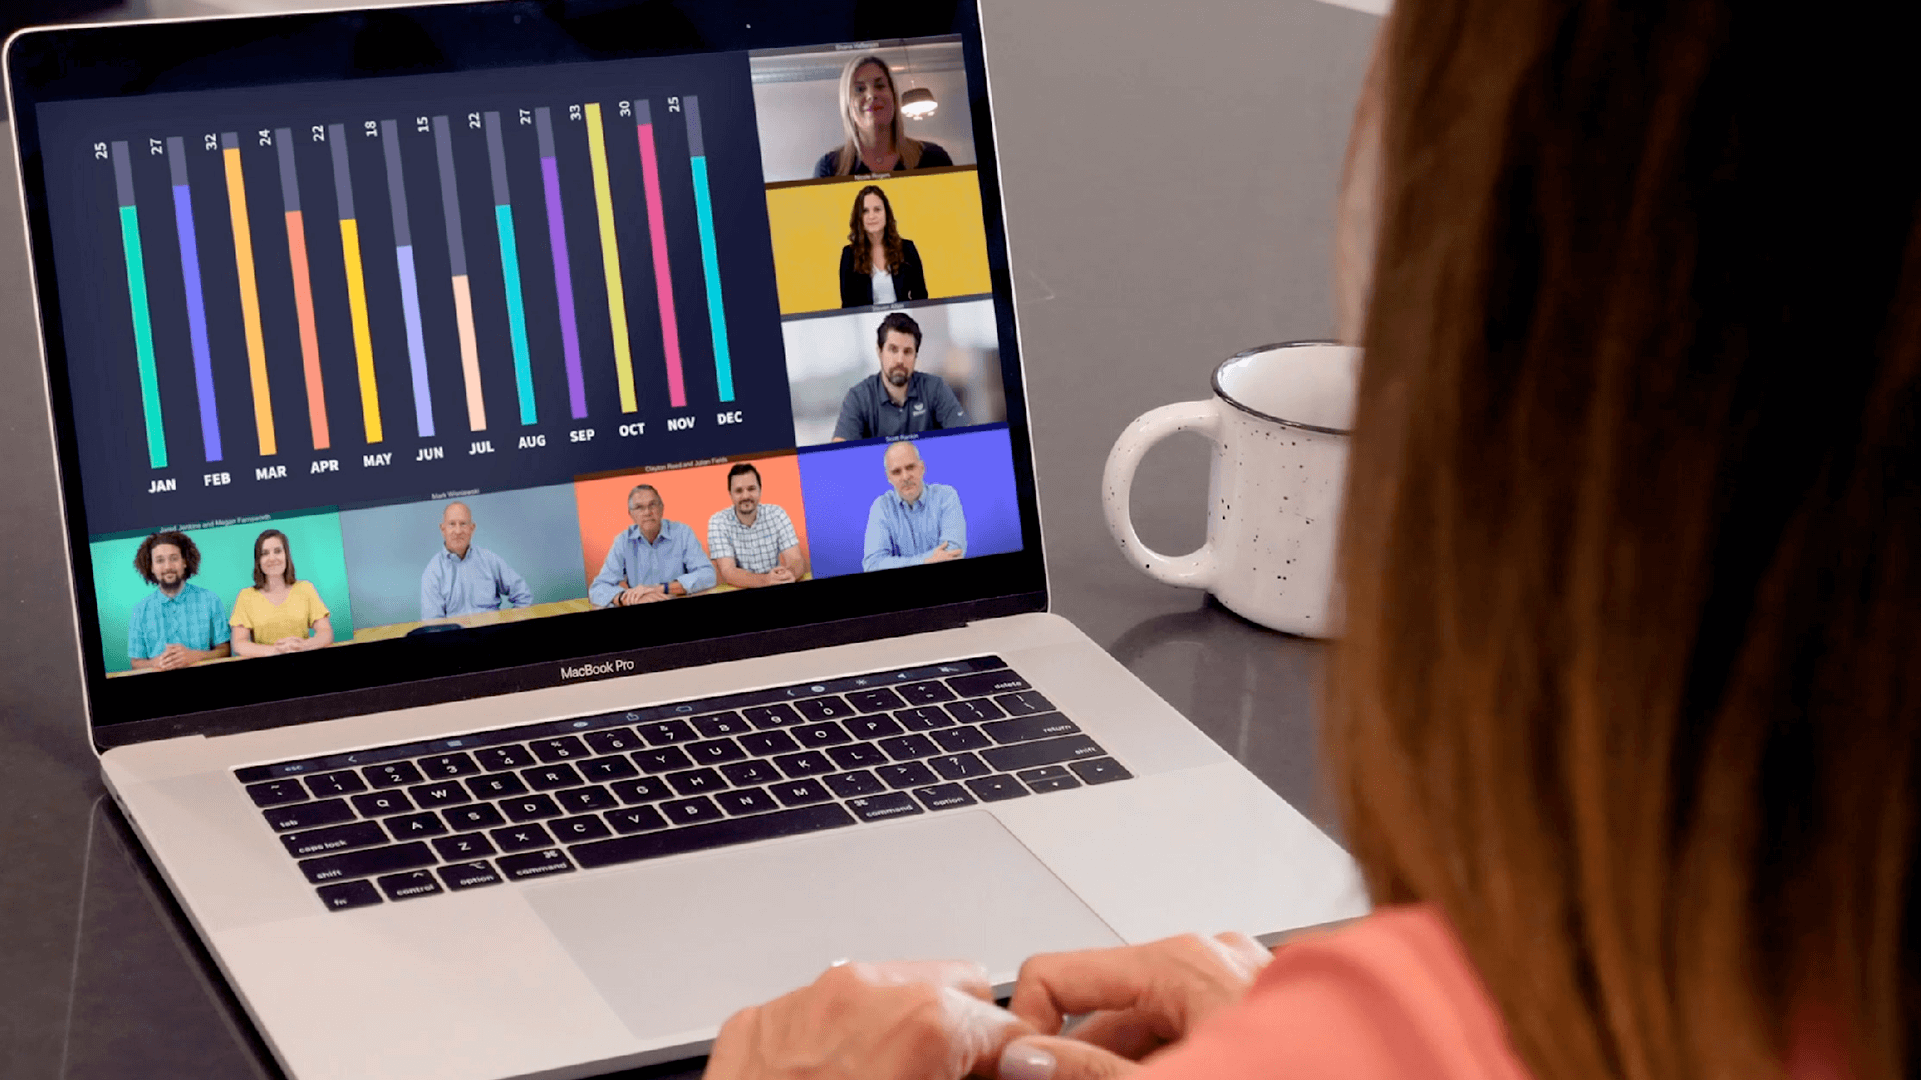 Best Video Conference Tools for Businesses in 2020